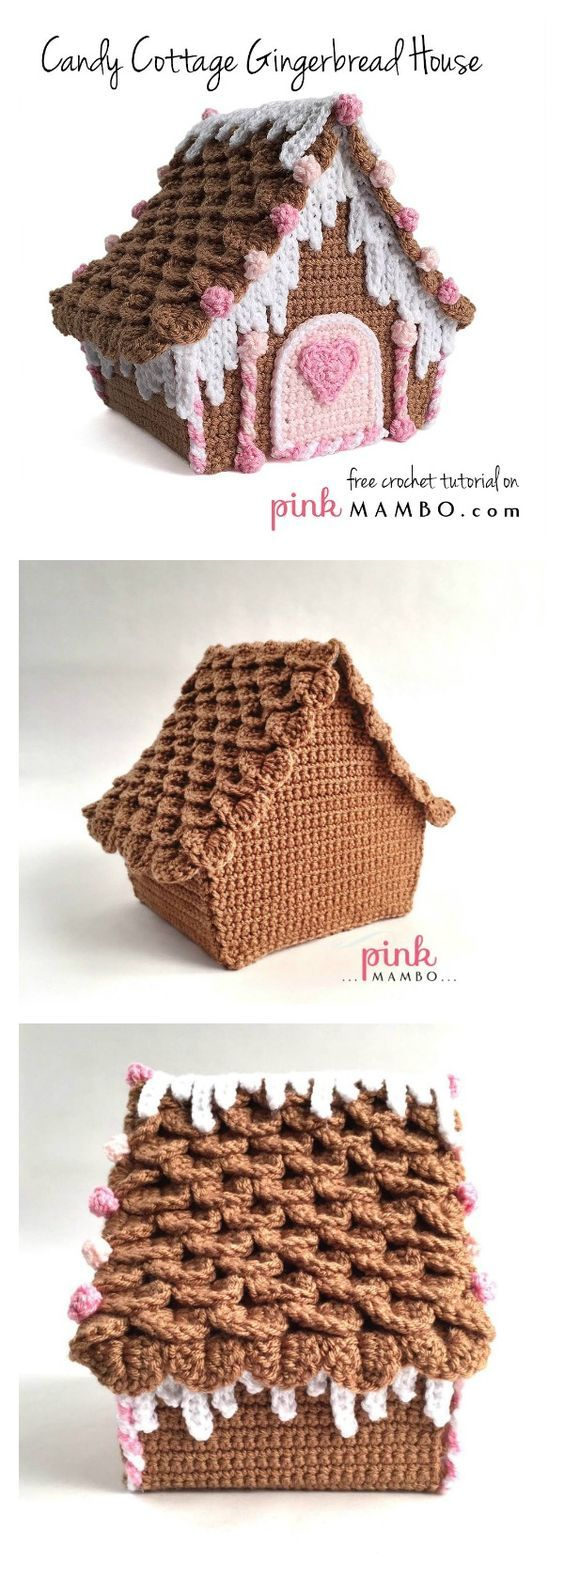 Candy Cottage Gingerbread House A Free Crochet Pattern over at ...